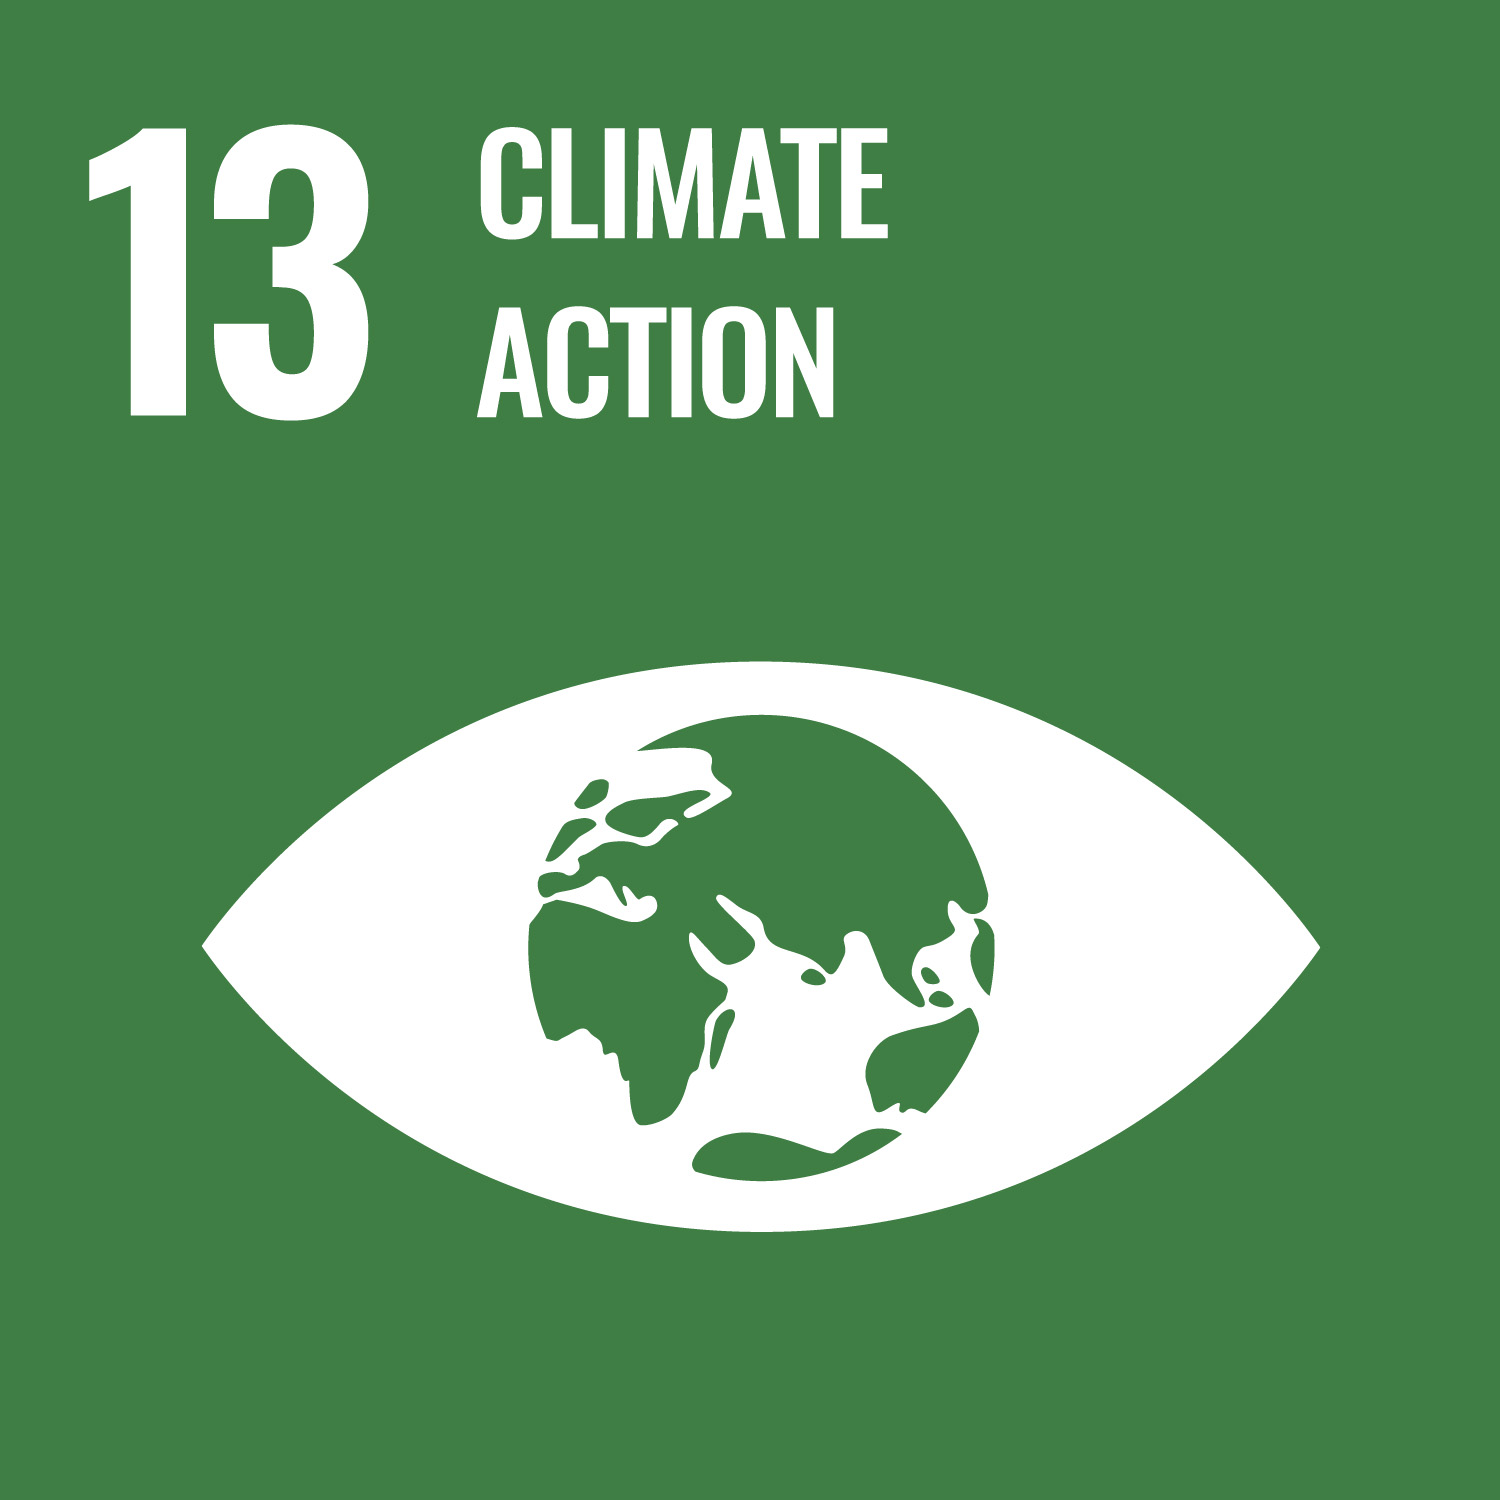 UN logo for climate action